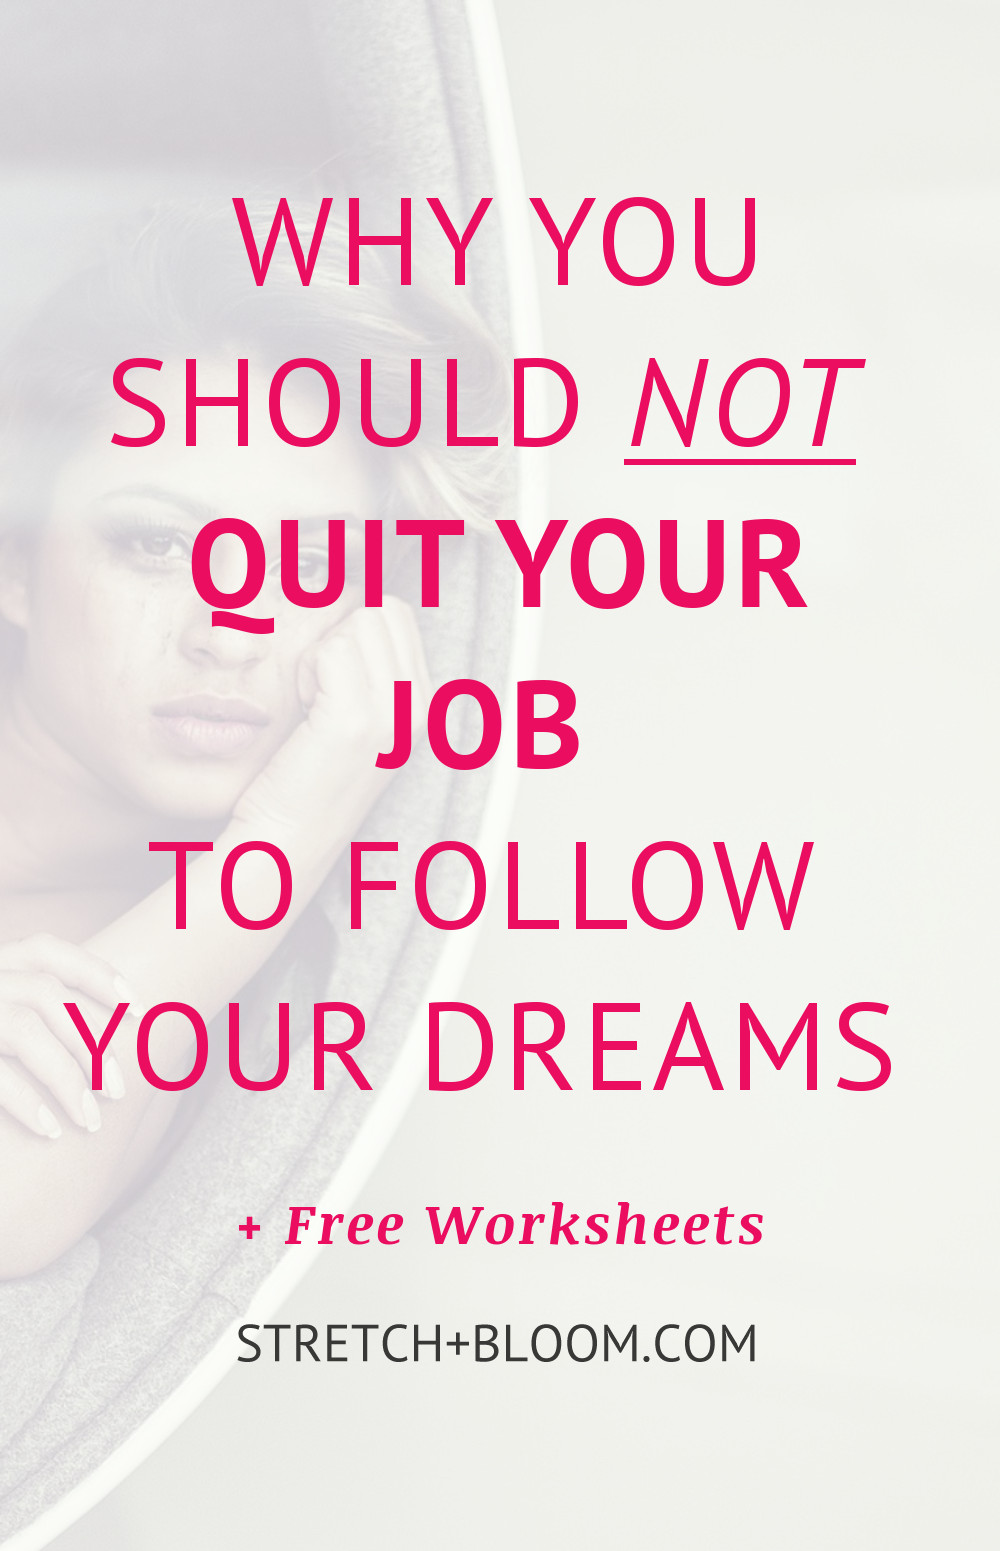 As much as I am always advocating that you follow your dreams and your passions, today I want to share with you the top 3 reasons why you should not quit your (high-paying but soul-crushing) job to live your dreams.